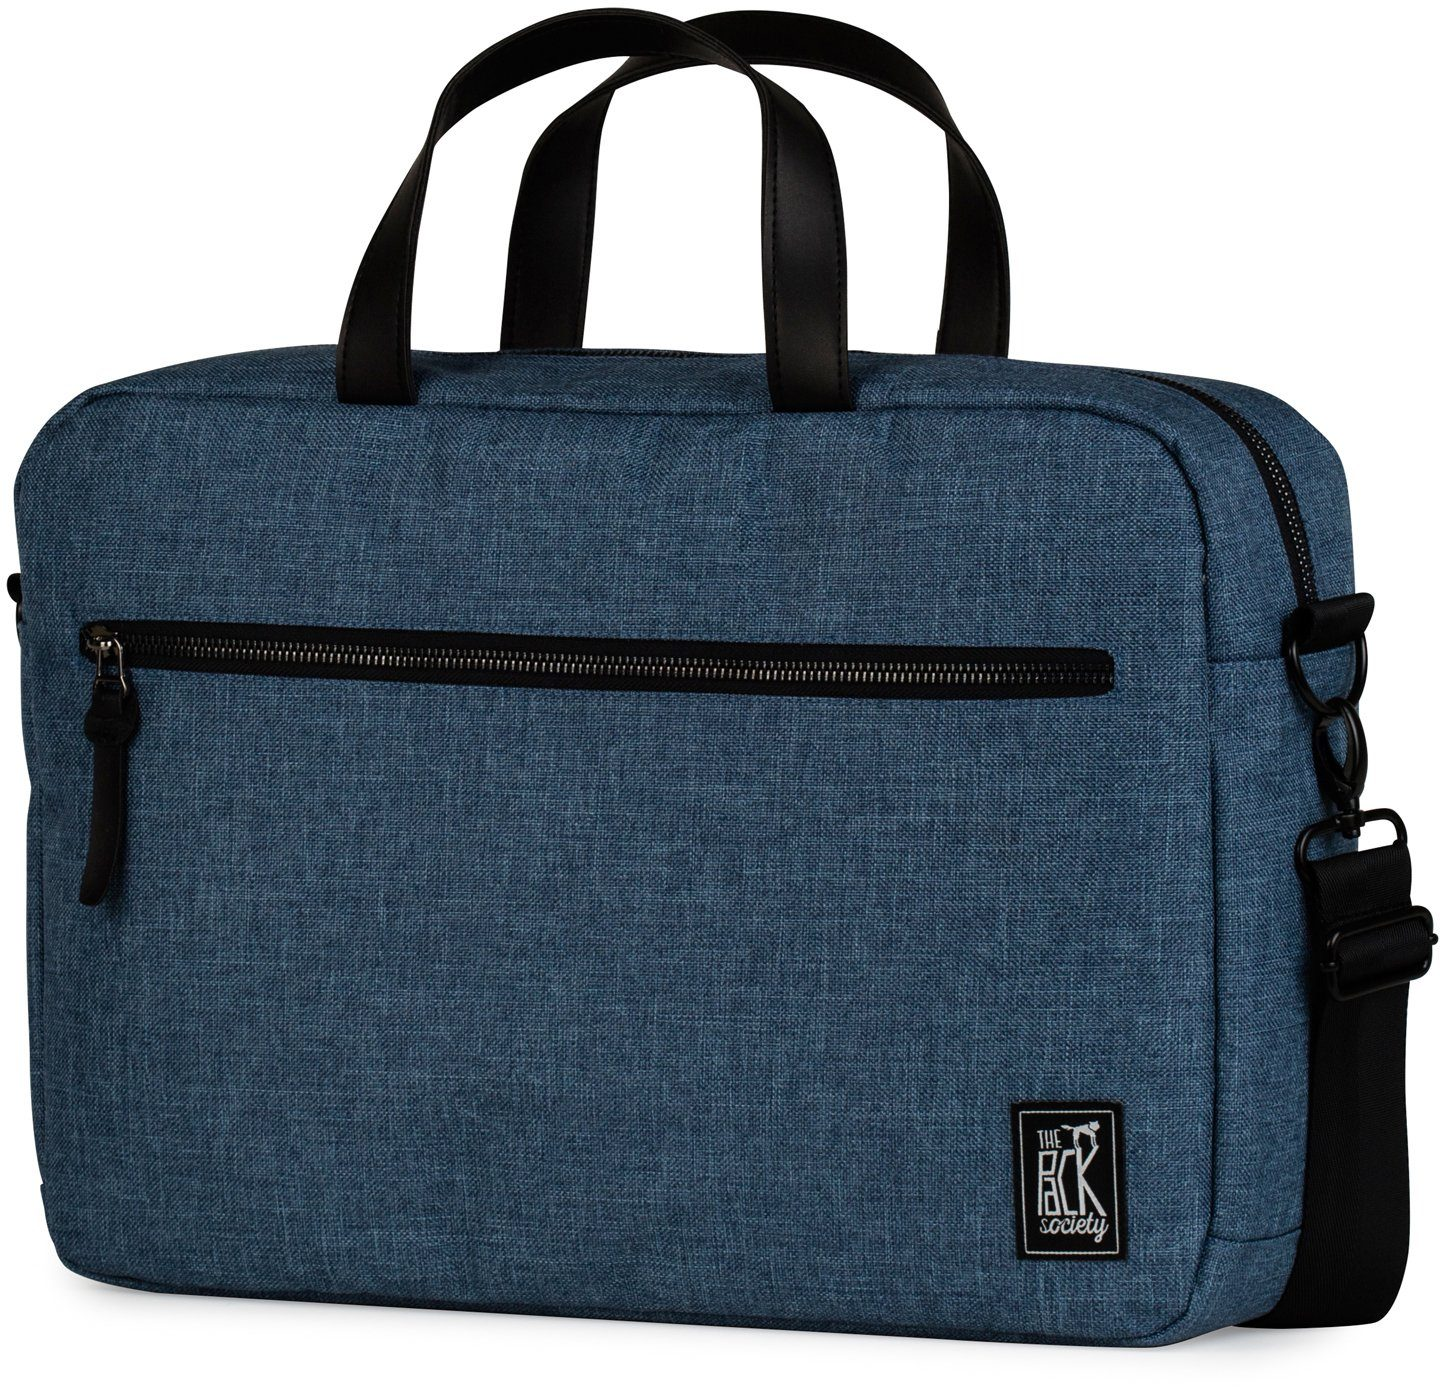 The Pack Society Laptoptasche, »Reporter Capsule, light blue duo tone«